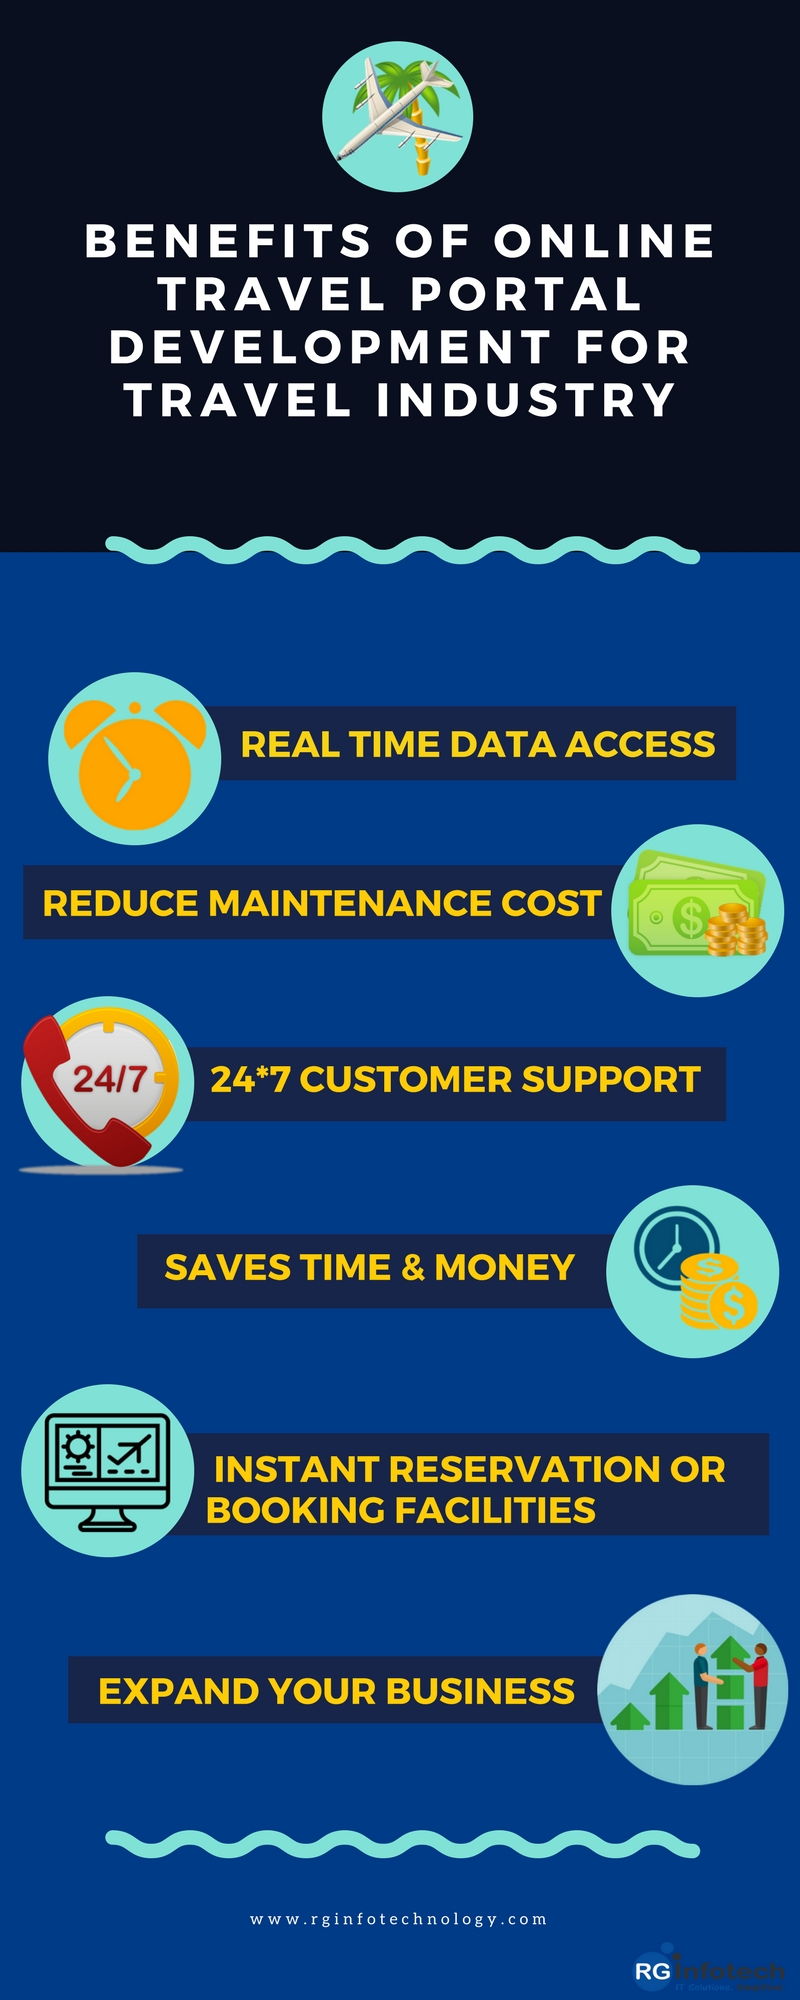 travel portal benefits infographic